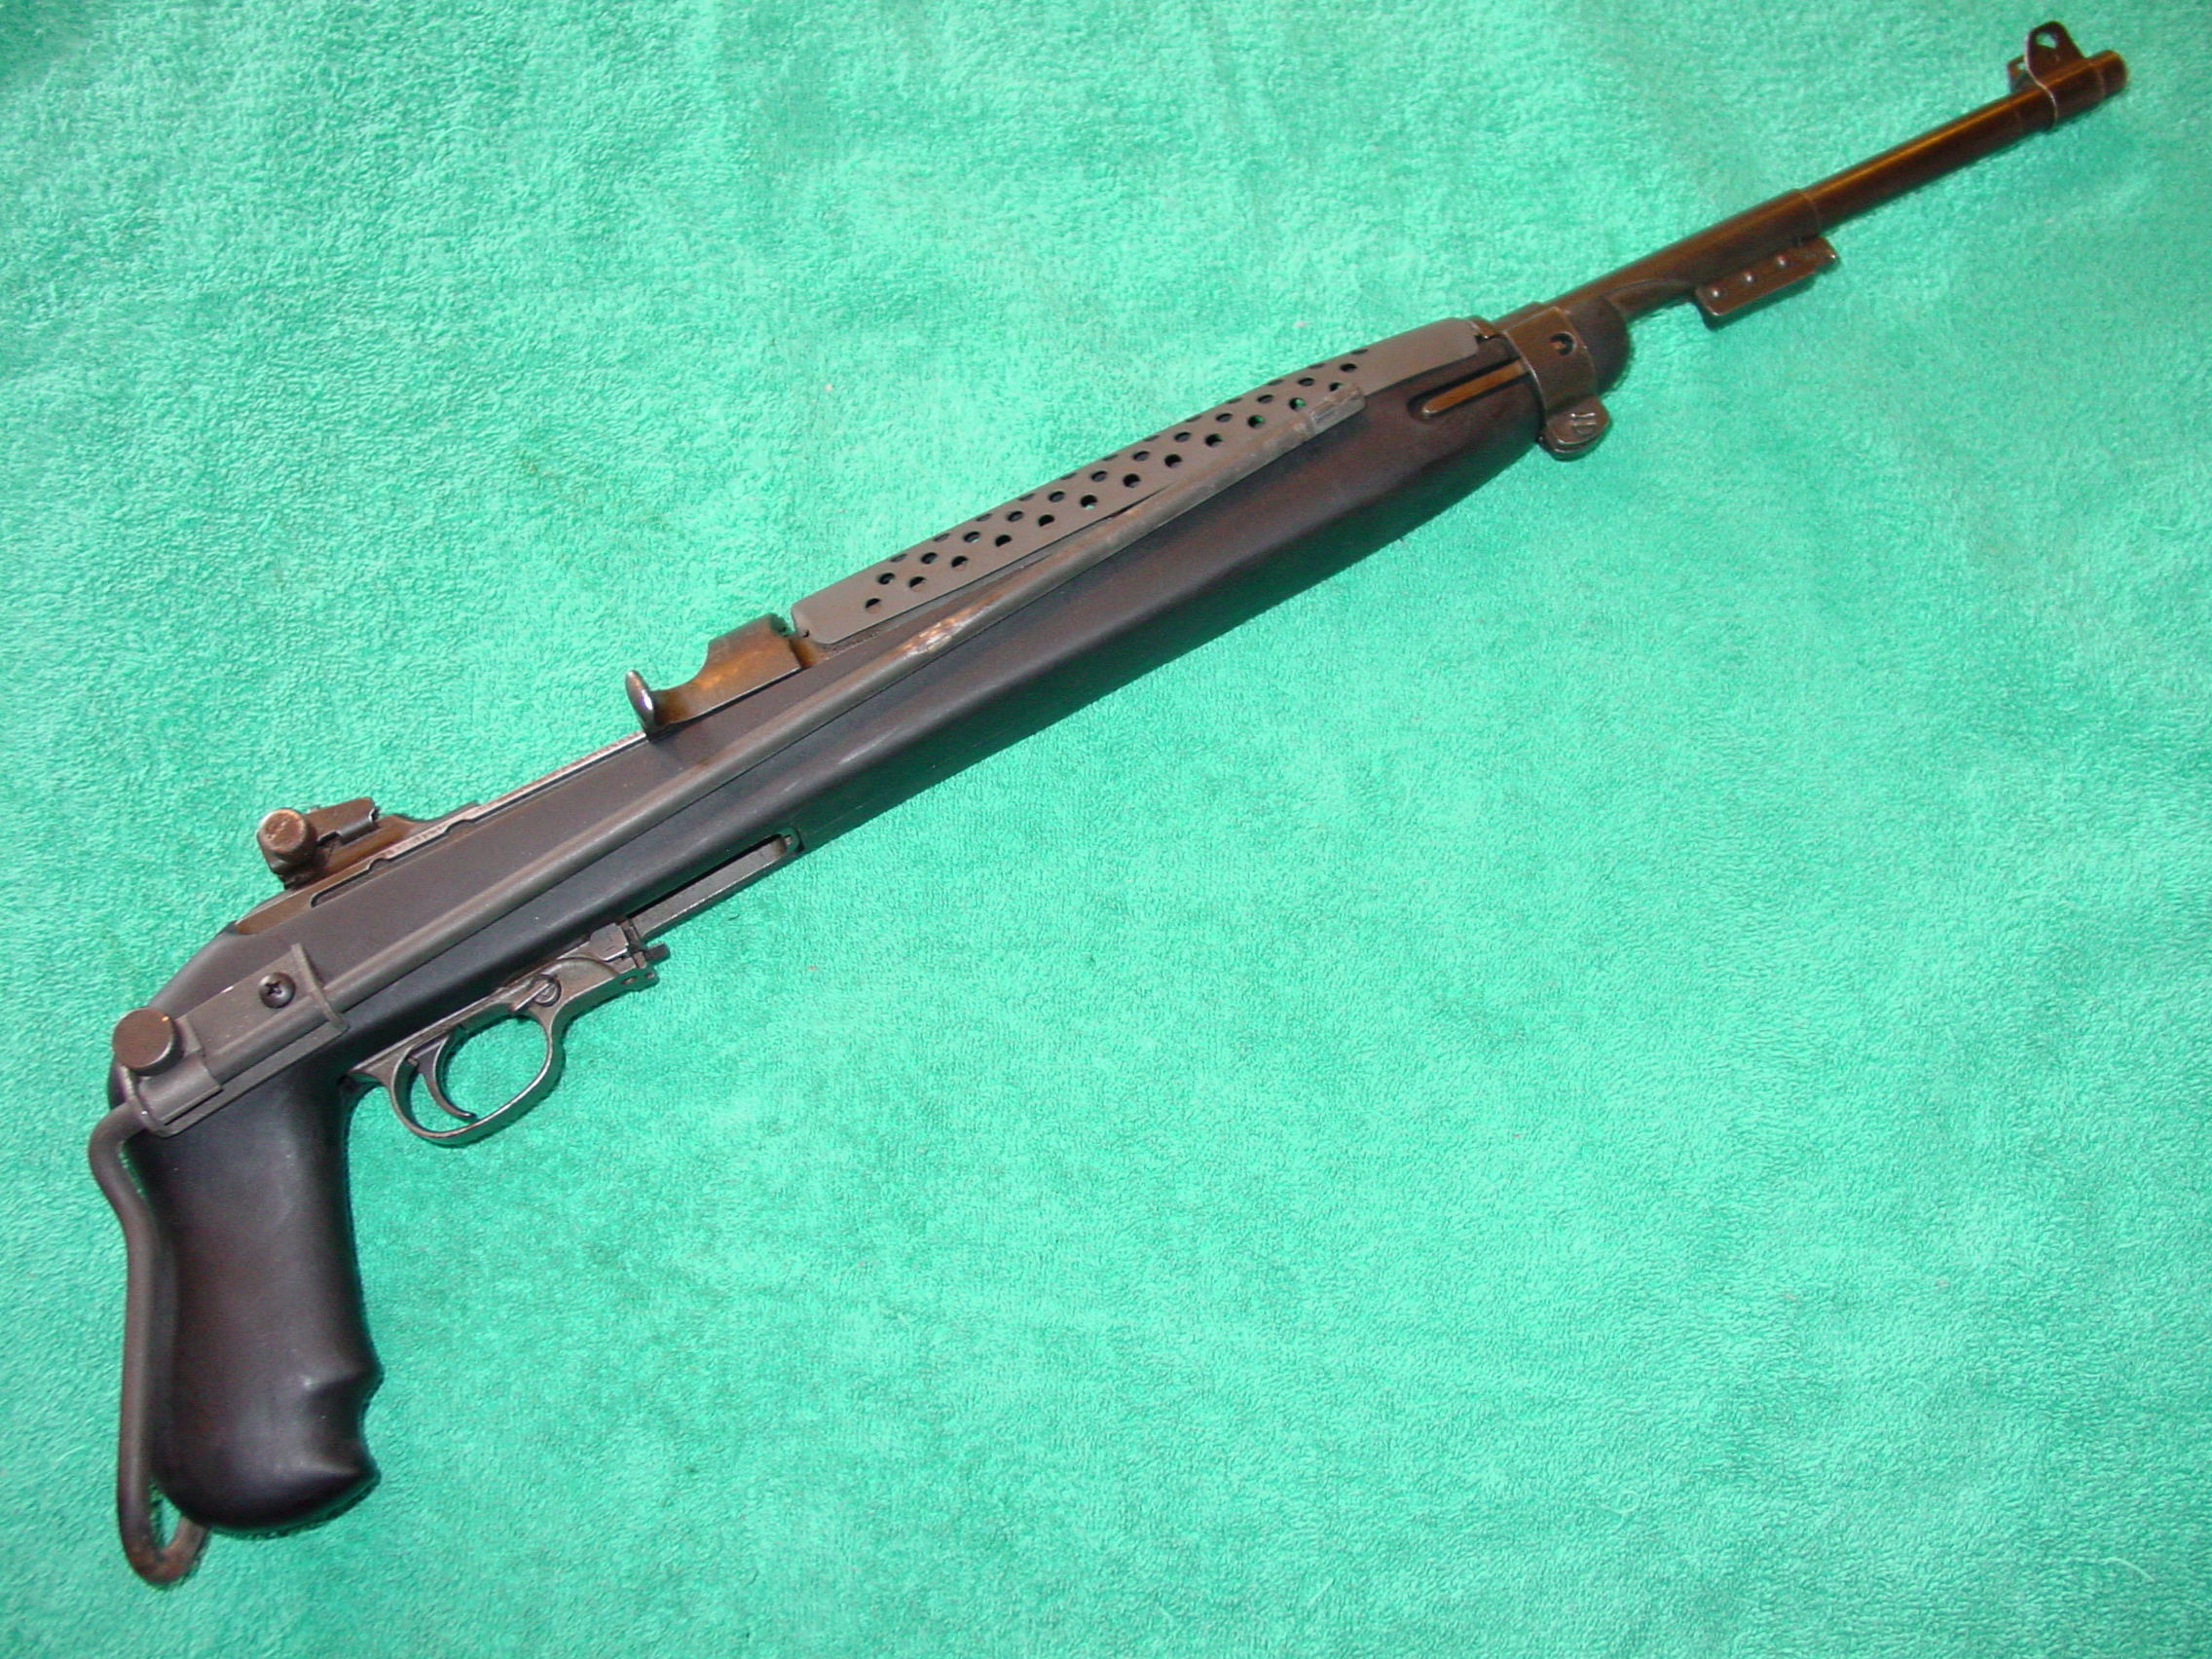 WTS: Collapsible Stock & Metal Handguard for M1 Carbine - CMP Forums